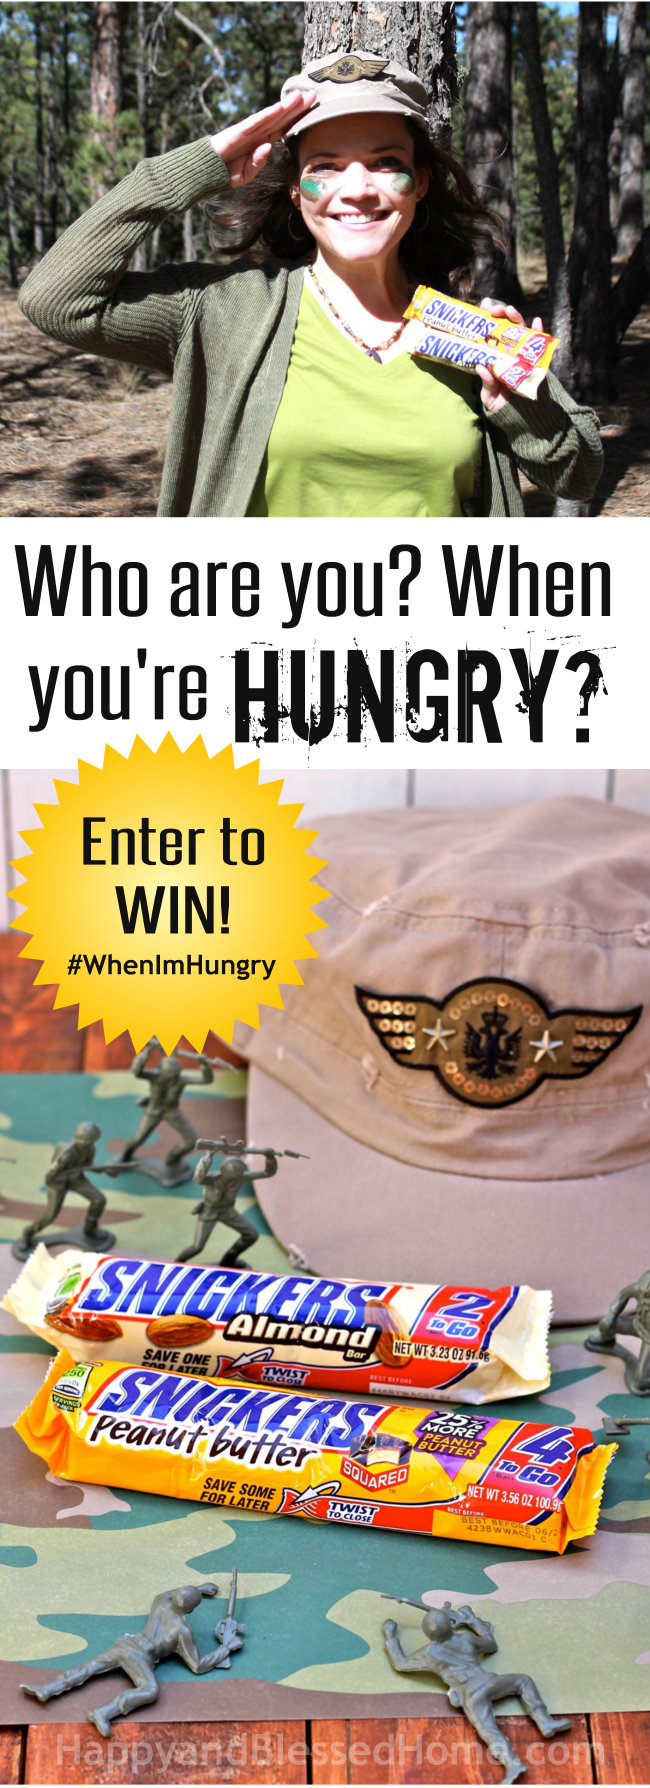 Enter to WIN the SNICKERS Who are you when you're hungry contes - Entry details at HappyandBlessedHome.com.jpg